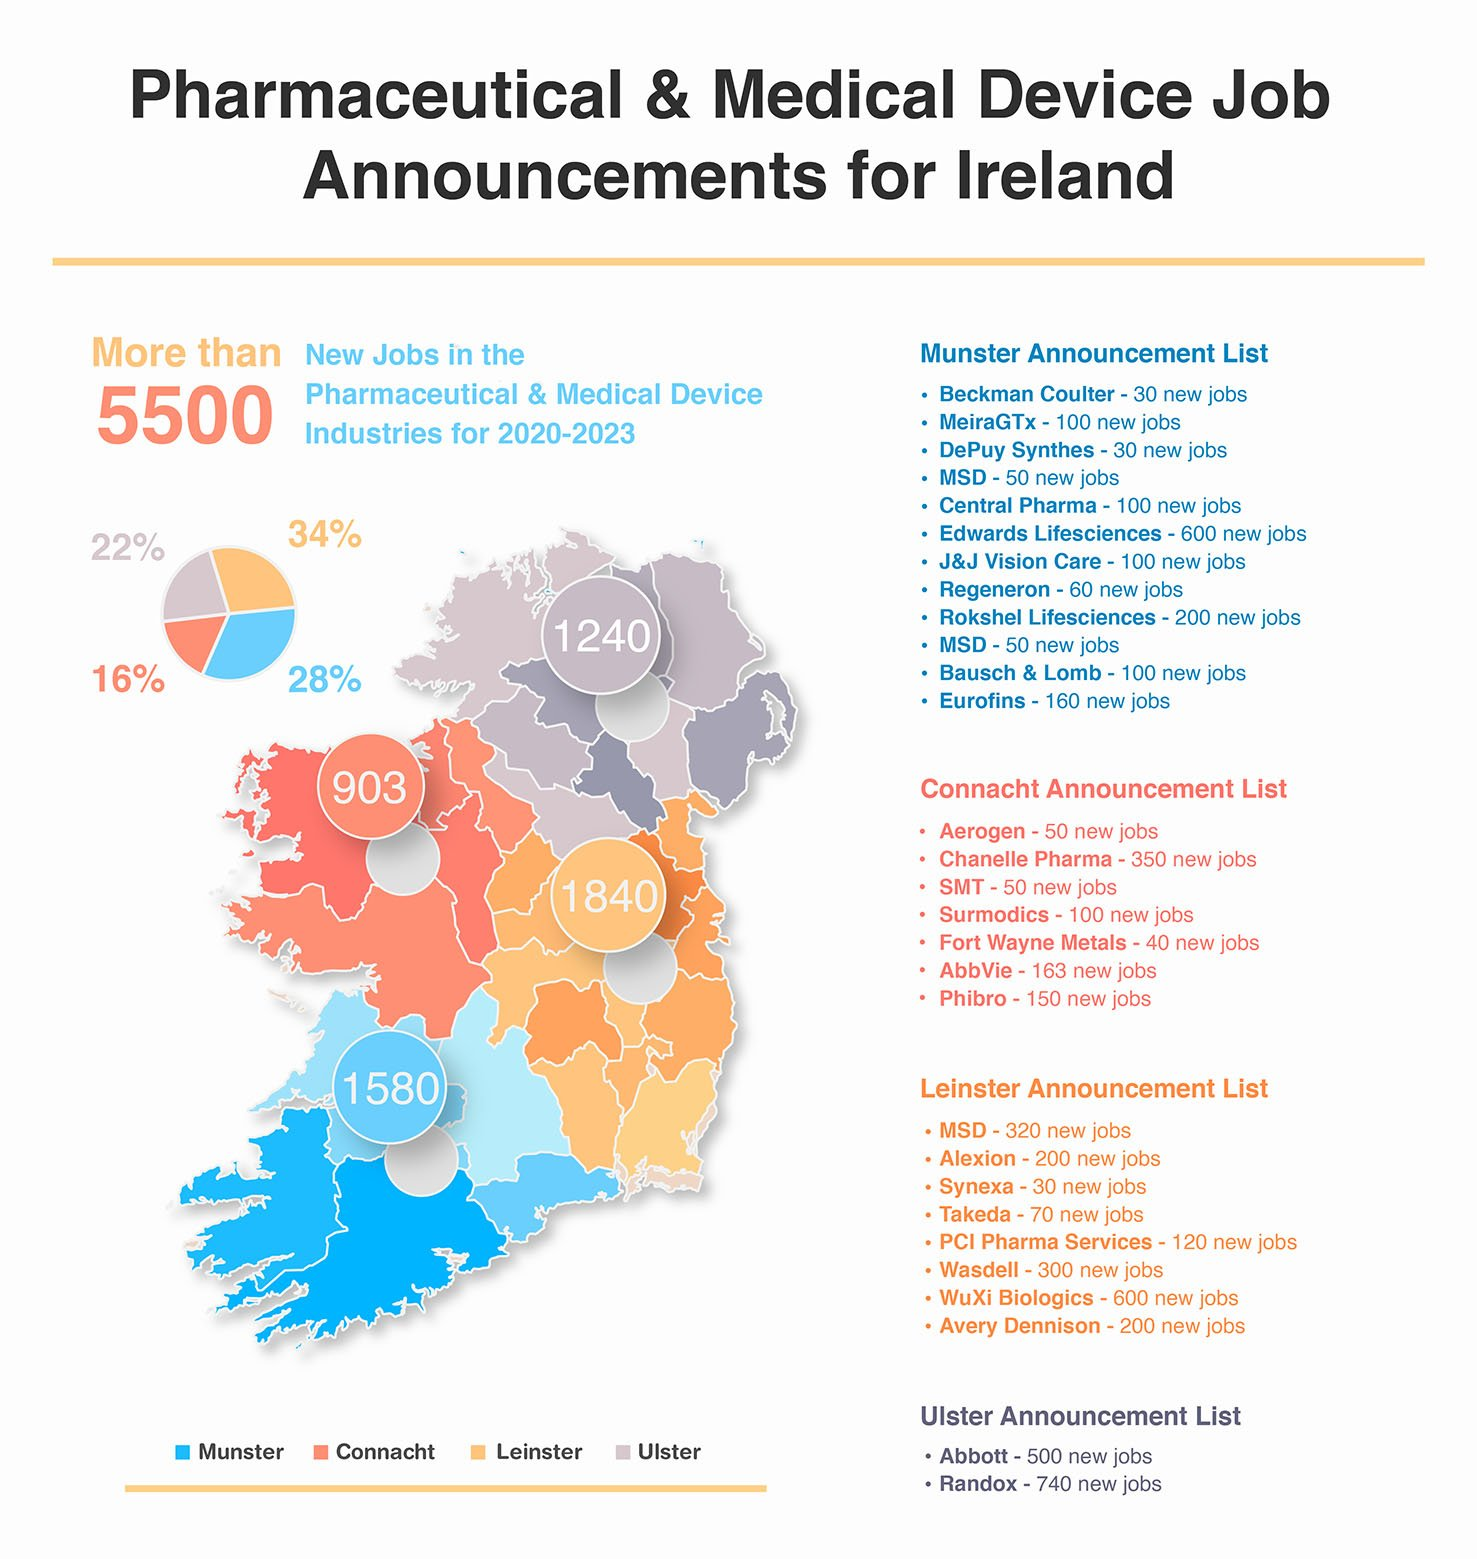 infographic showing the locations and details of new pharmaceutical and medical device job announcements in ireland